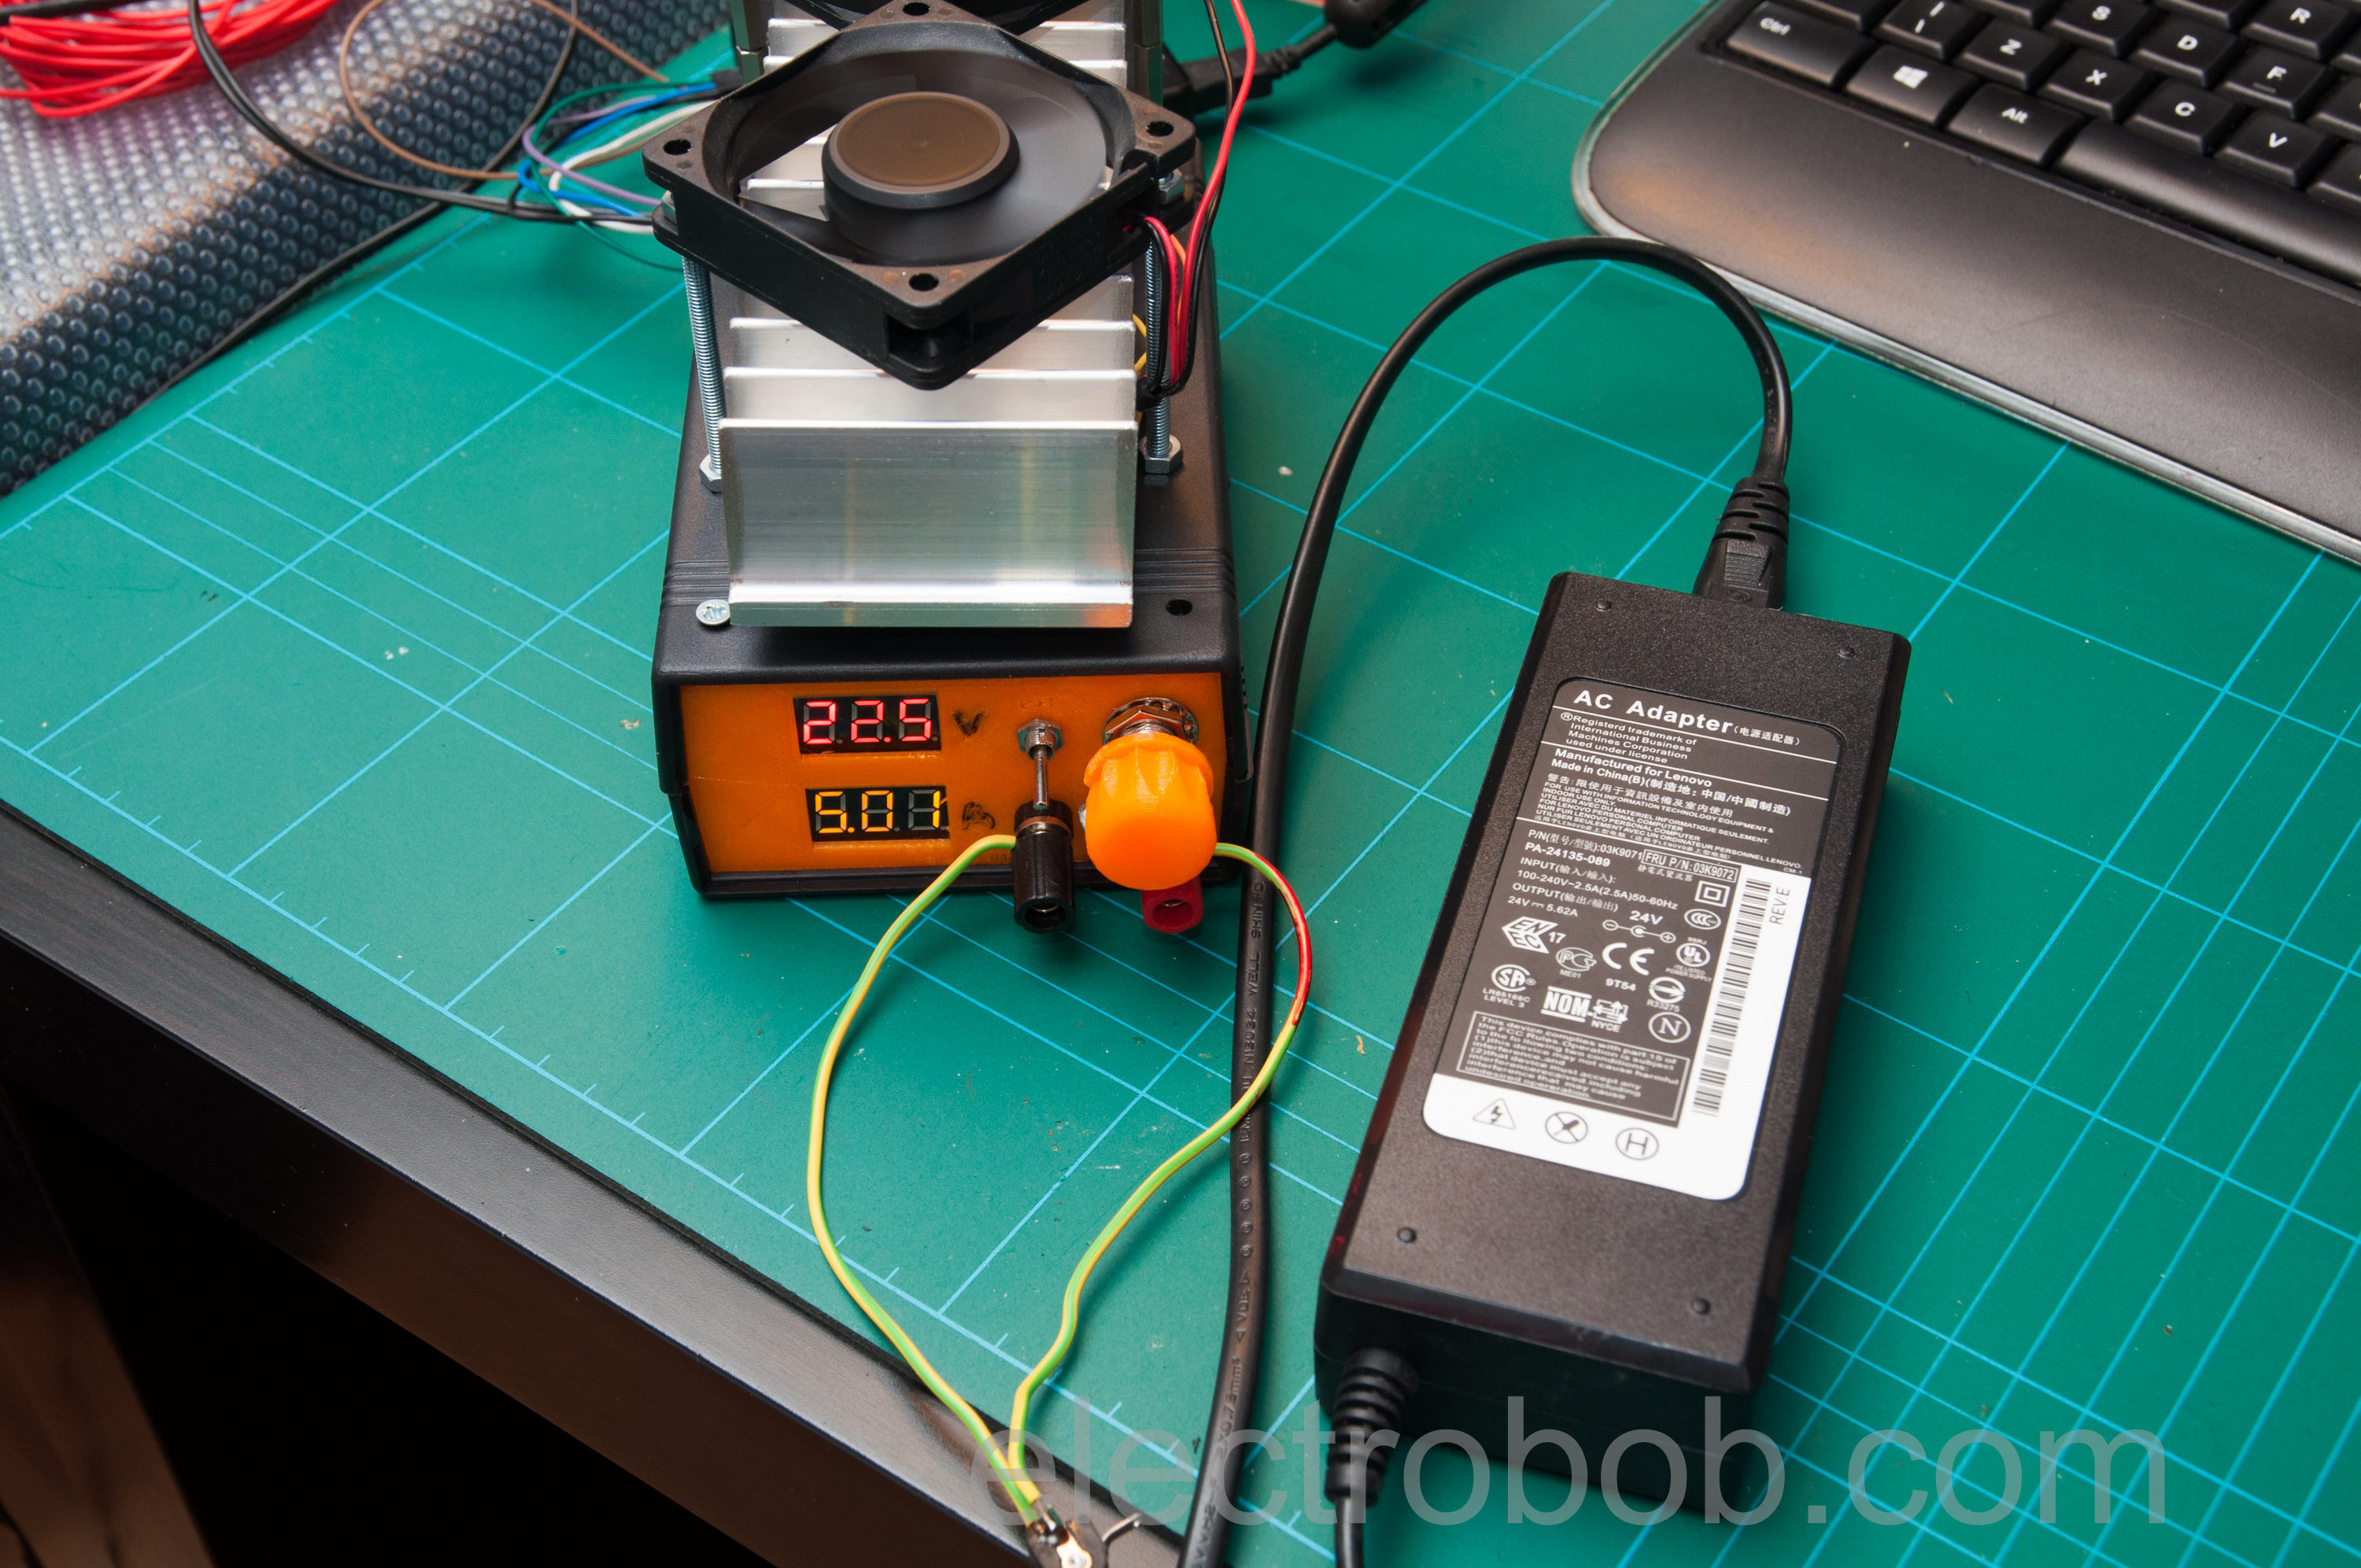 Psu Burner Electro Bob Circuit Continuity Tester Using Opamps Eeweb Community And Finally Testing The Speed A 7805 Regulator Short Output Wires 10khz 1a Load Rise Fall Time Are About 21s